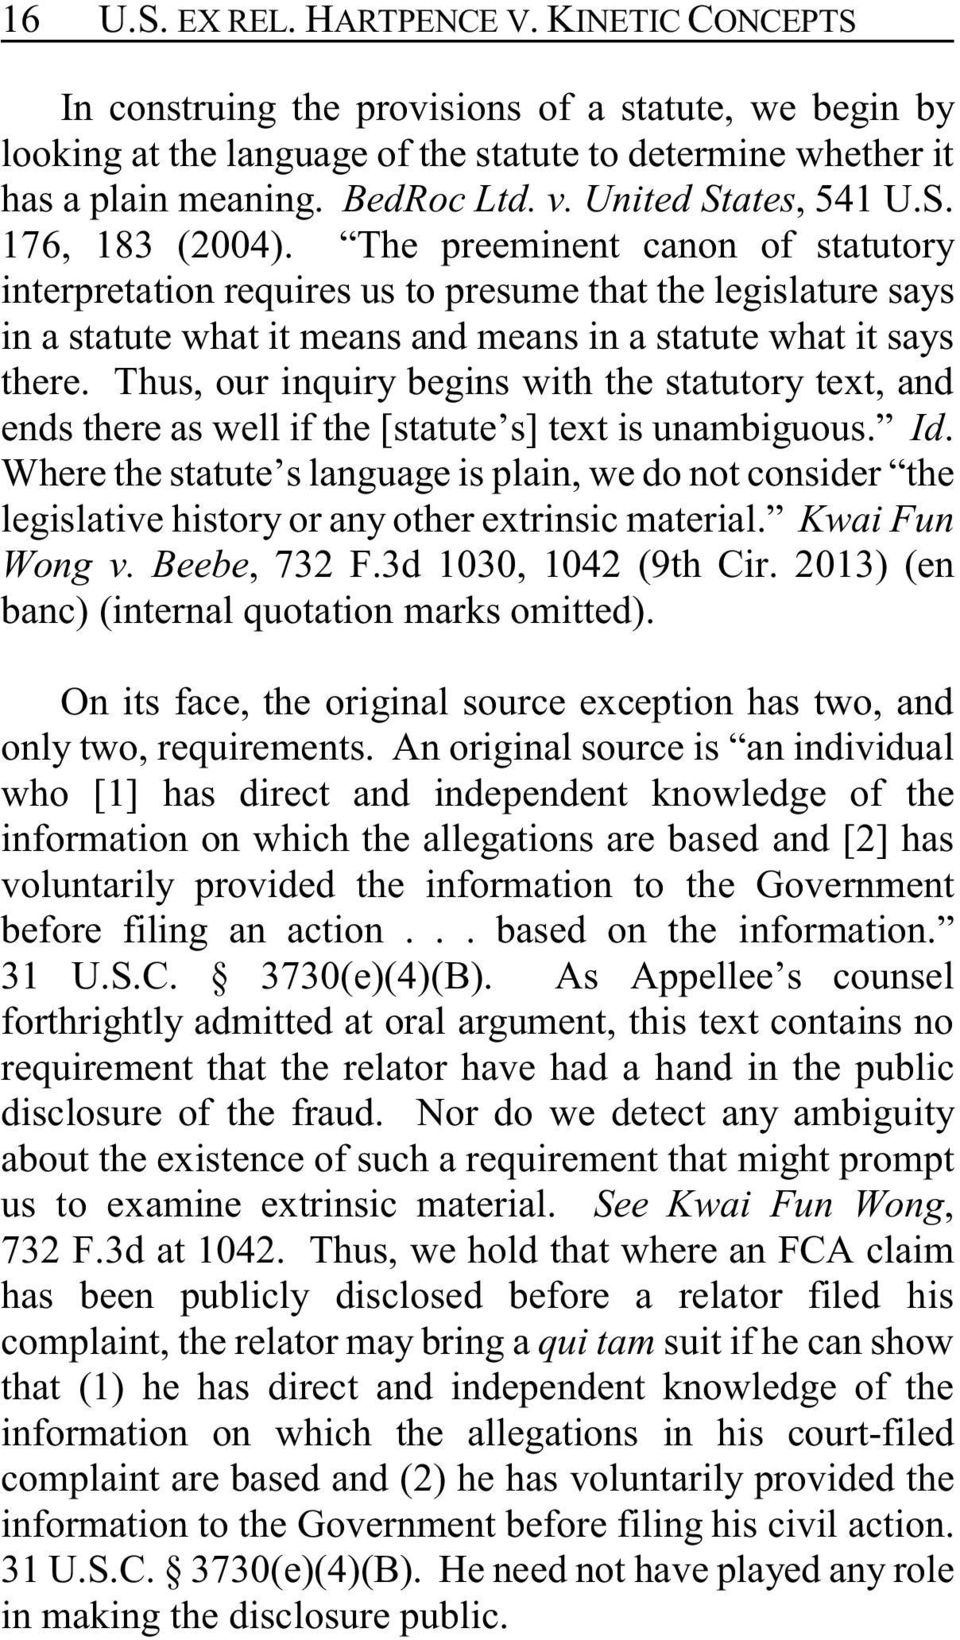 The preeminent canon of statutory interpretation requires us to presume that the legislature says in a statute what it means and means in a statute what it says there.